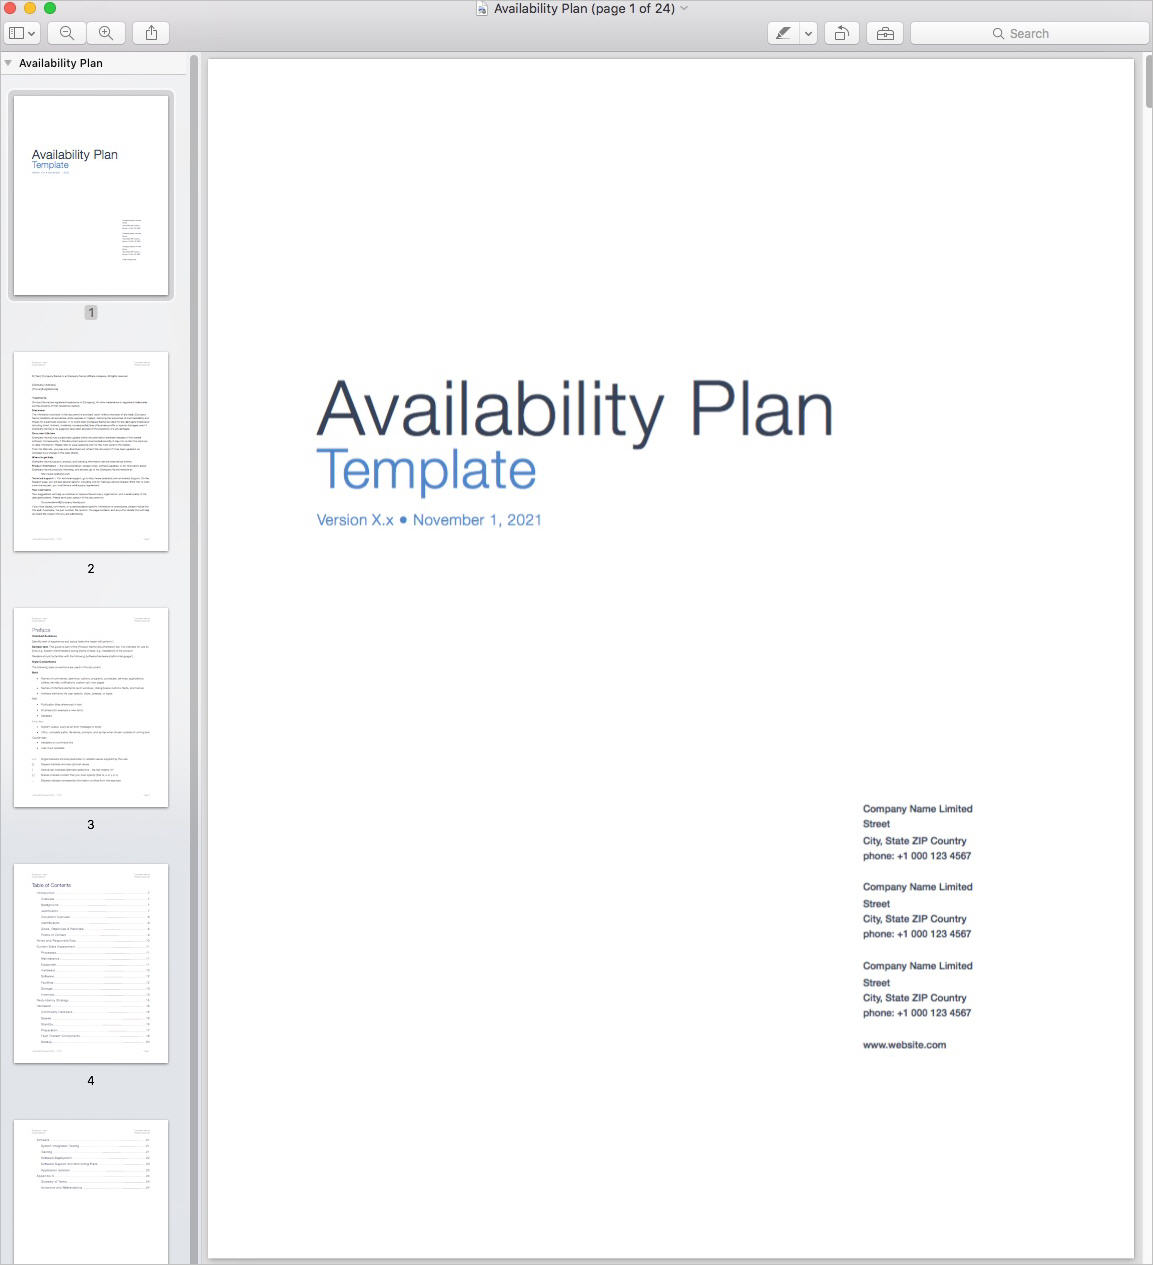 Availability_Plan_Template_Apple_iWork_Pages_Thumbnails